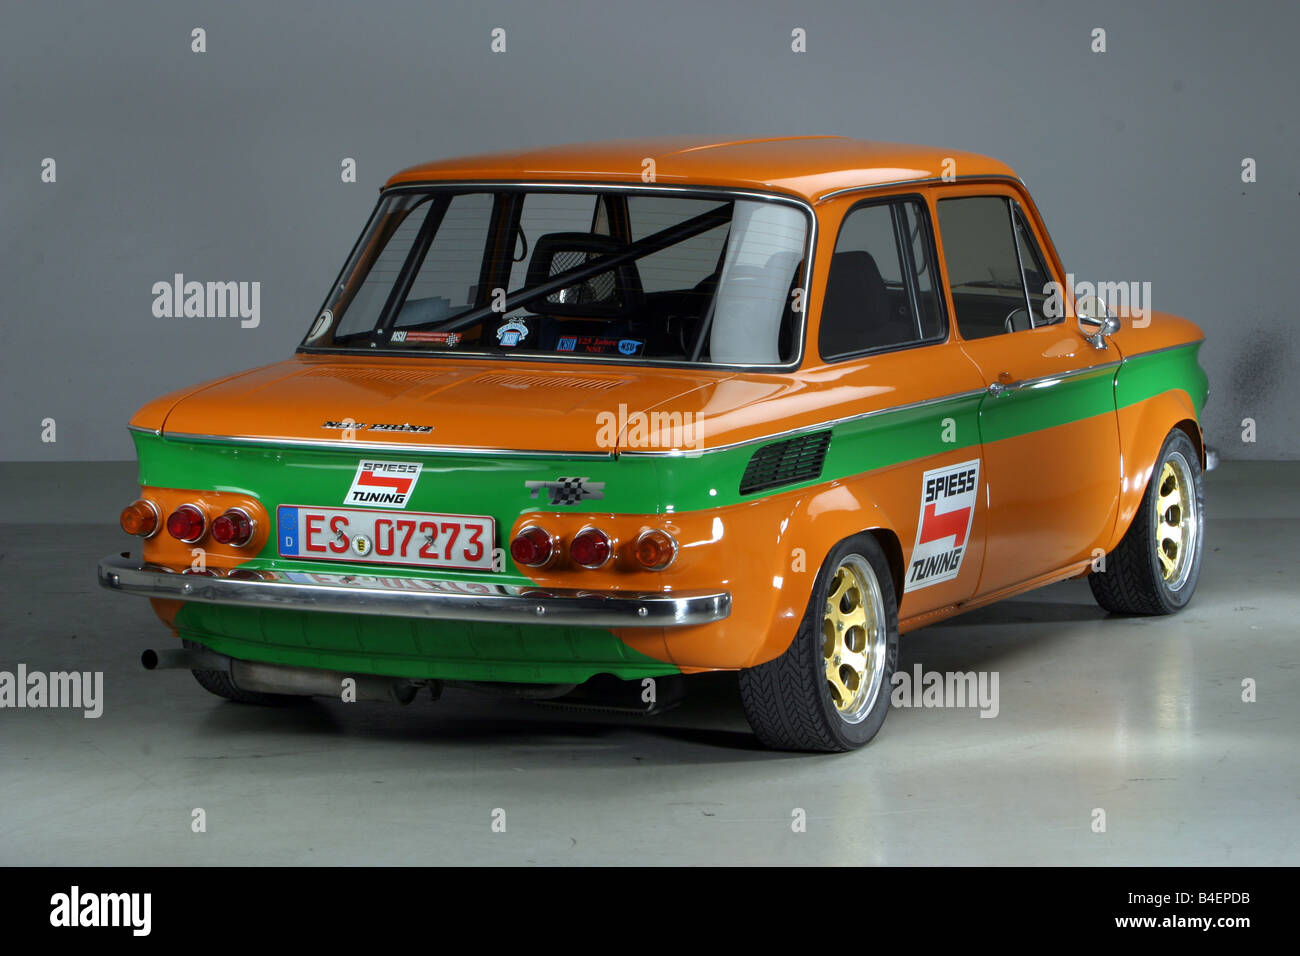 Old Race Car Stock Cars S To S